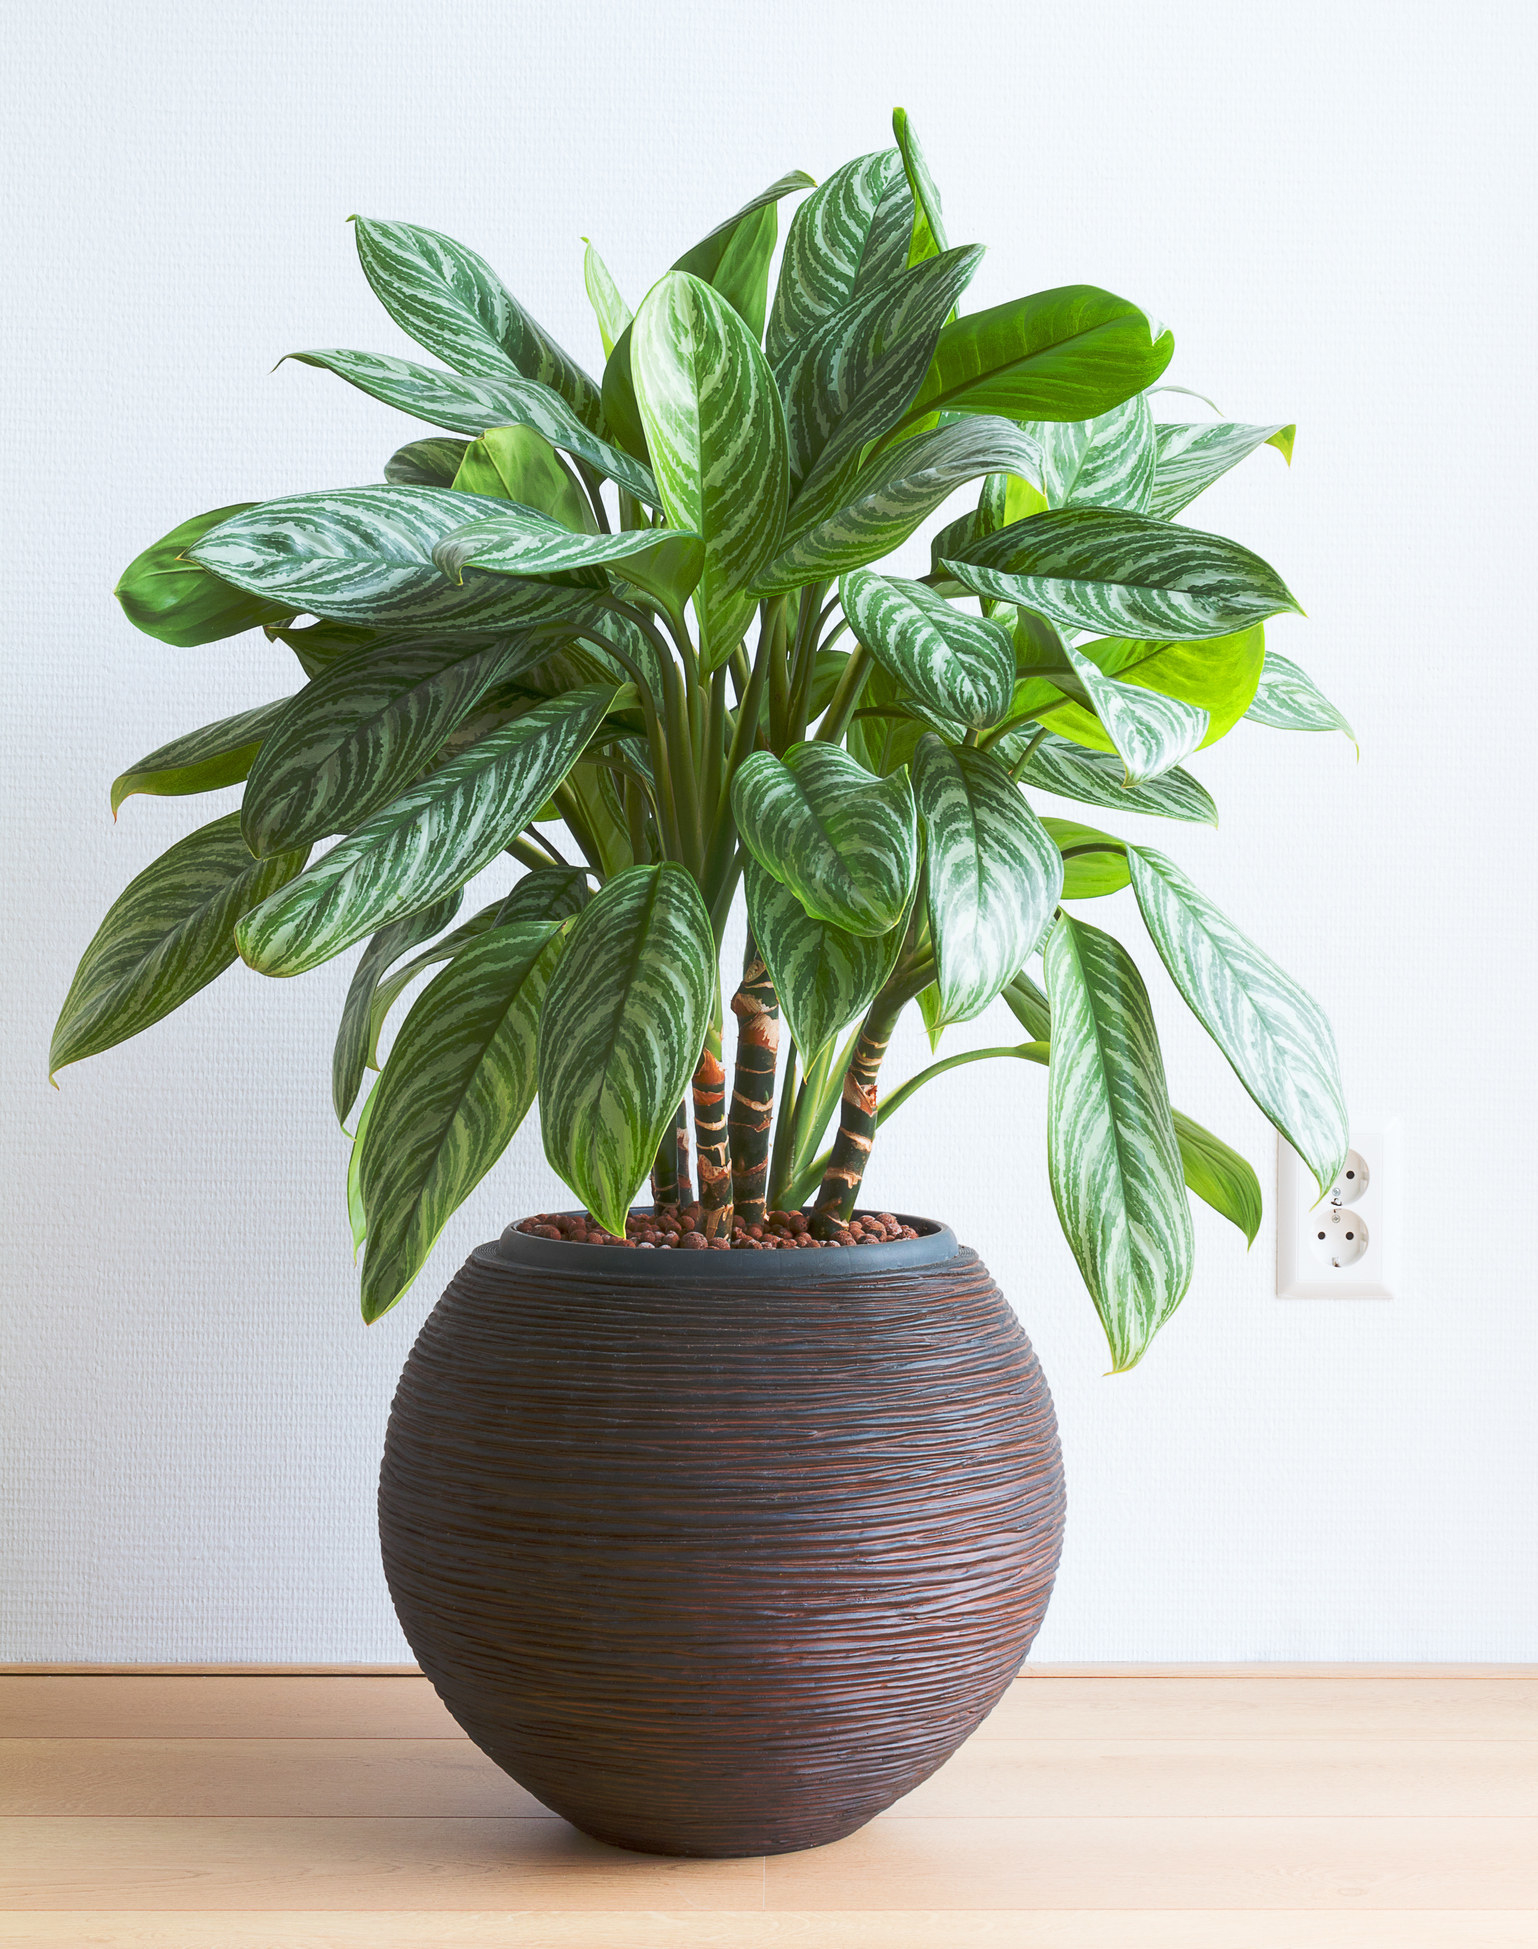 15 Houseplants That Can Remove Toxins In Your Home